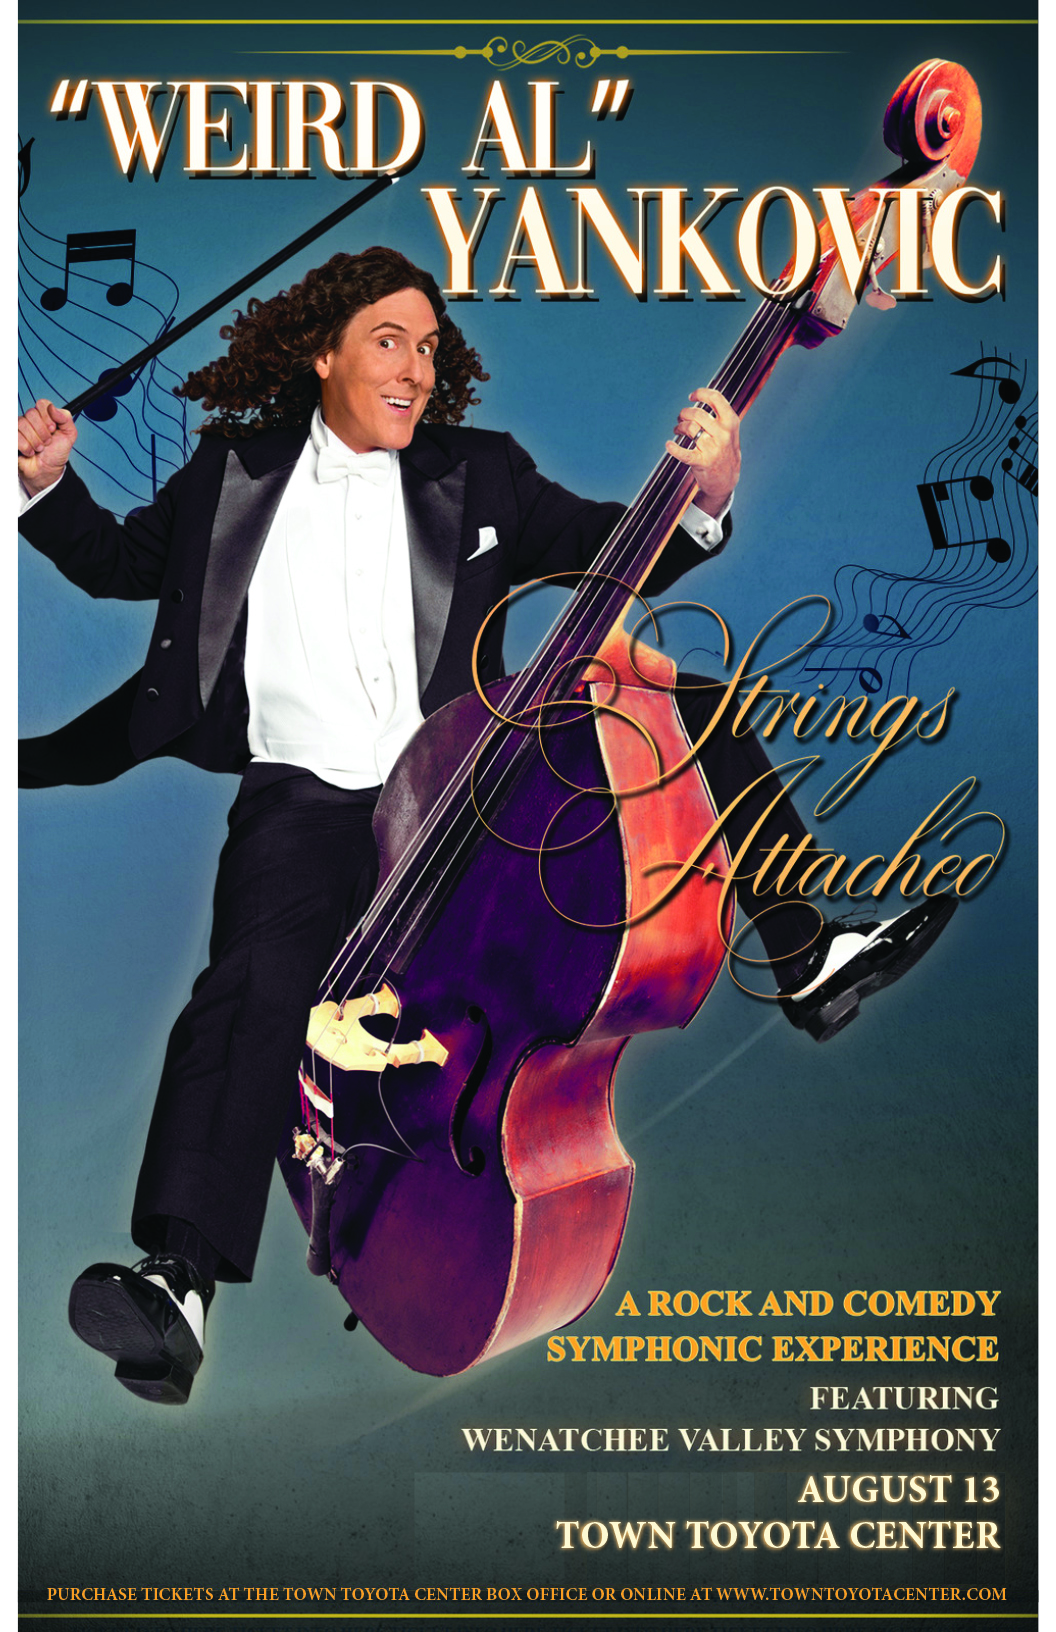 Weird Al Yankovic low res poster.jpg